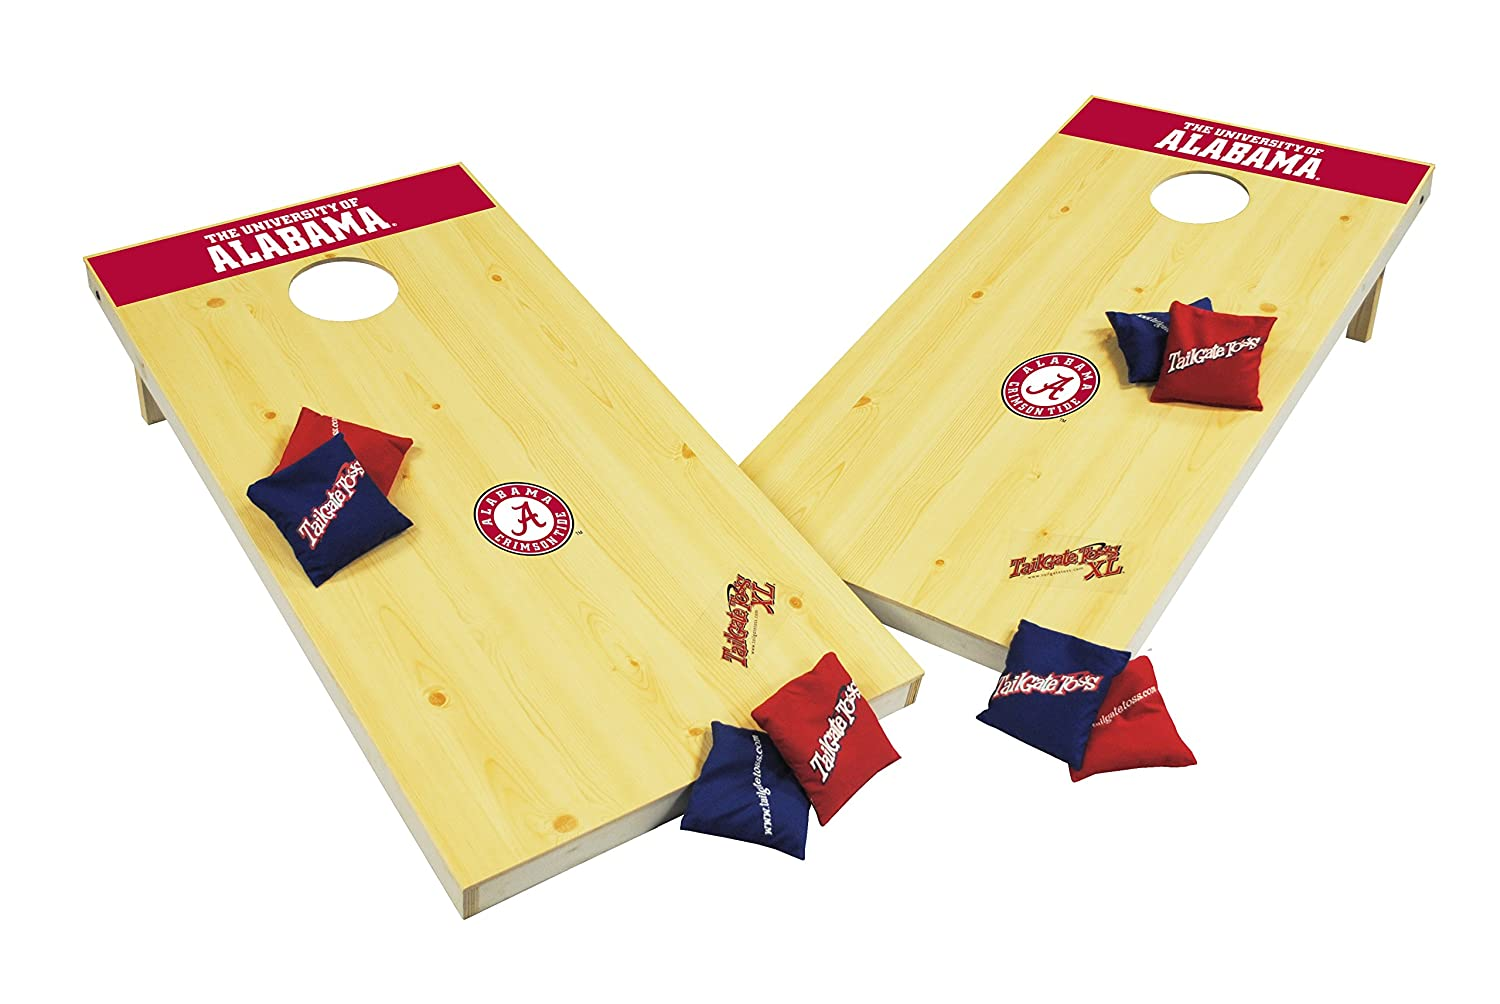 Wondrous Md Sports Bean Bag Toss Court Appointed Receiver Ocoug Best Dining Table And Chair Ideas Images Ocougorg